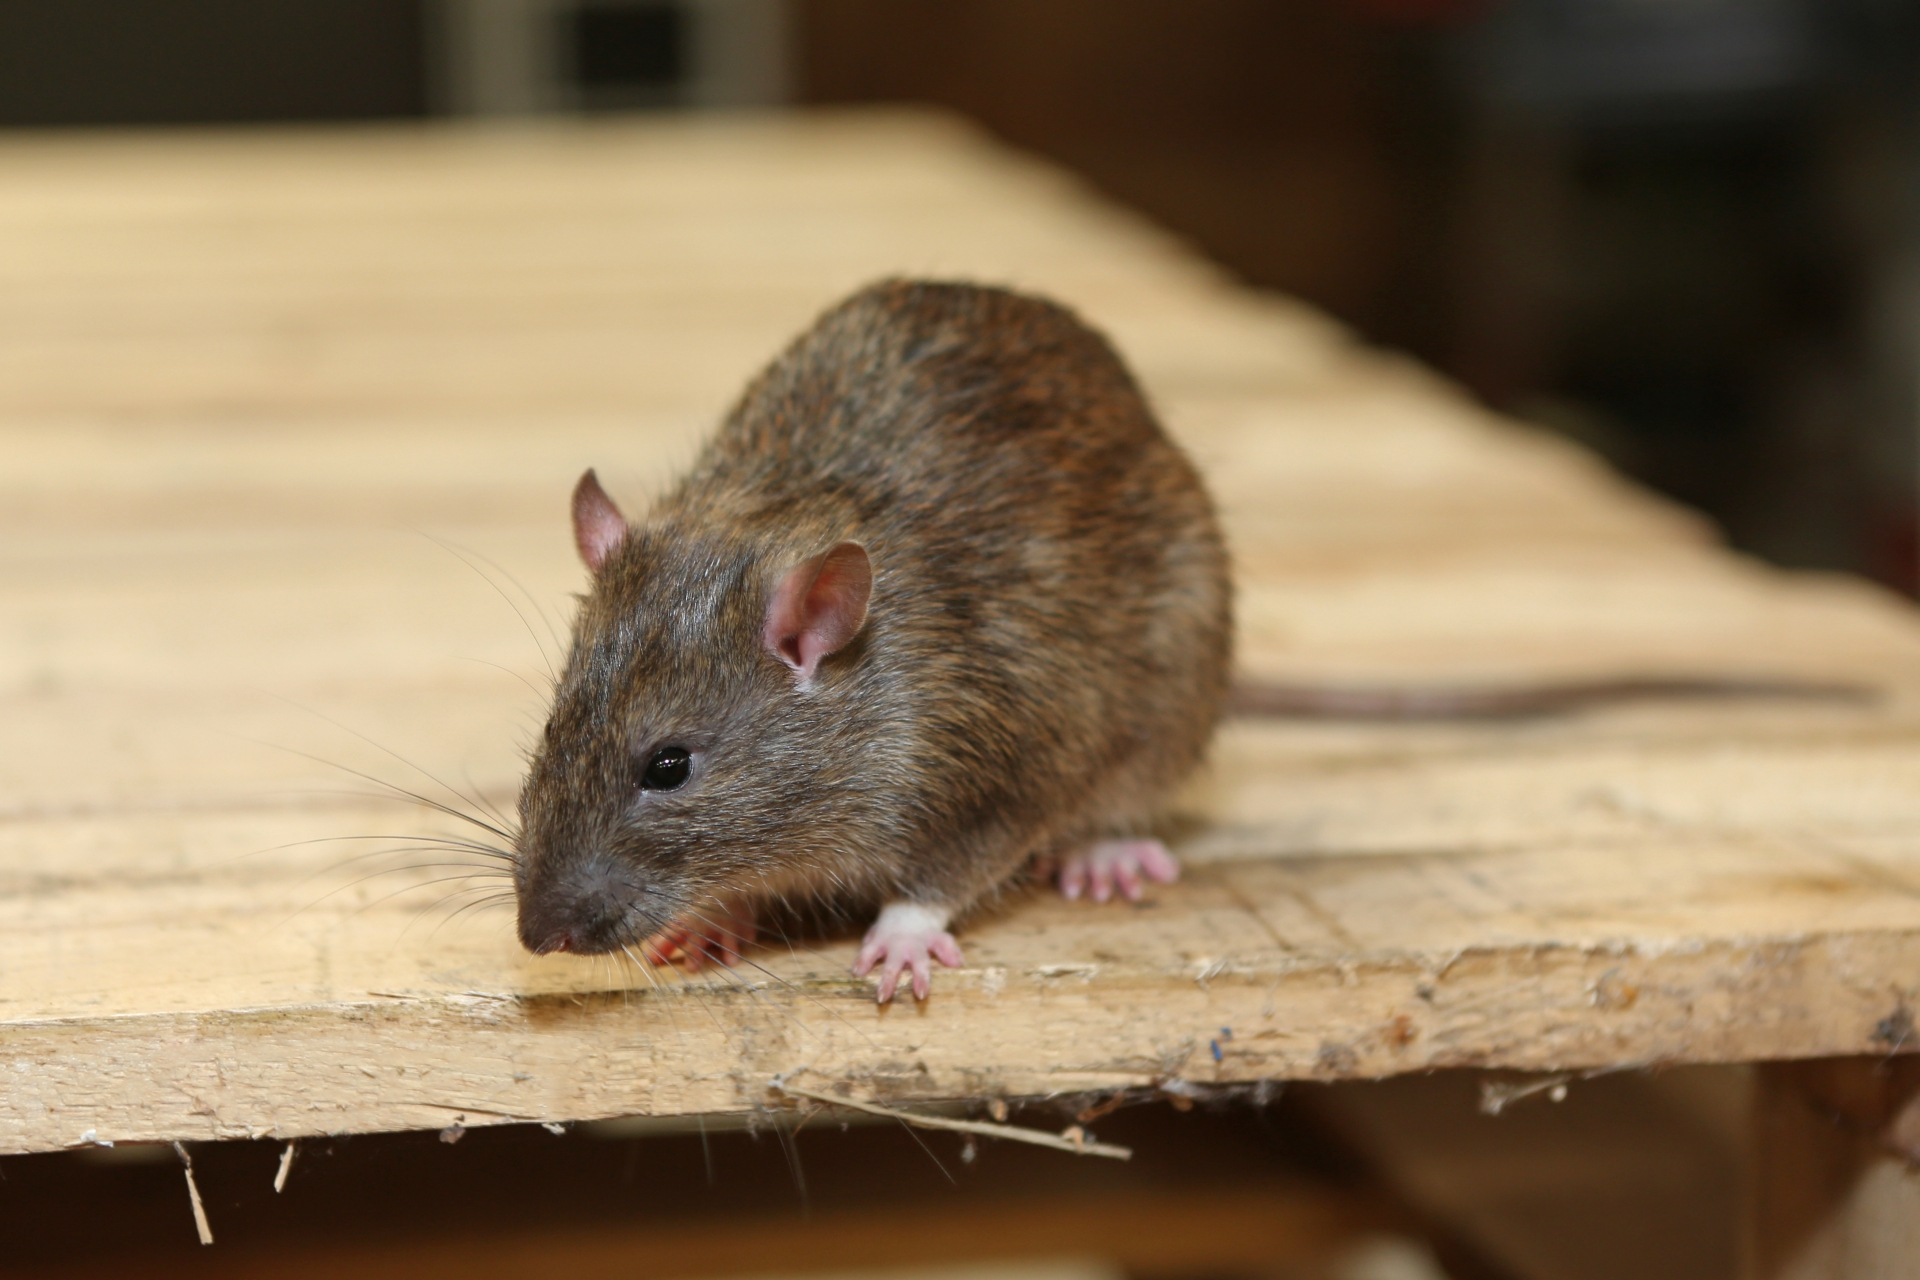 Rat Infestation, Pest Control in Shepherd's Bush, W12. Call Now 020 8166 9746